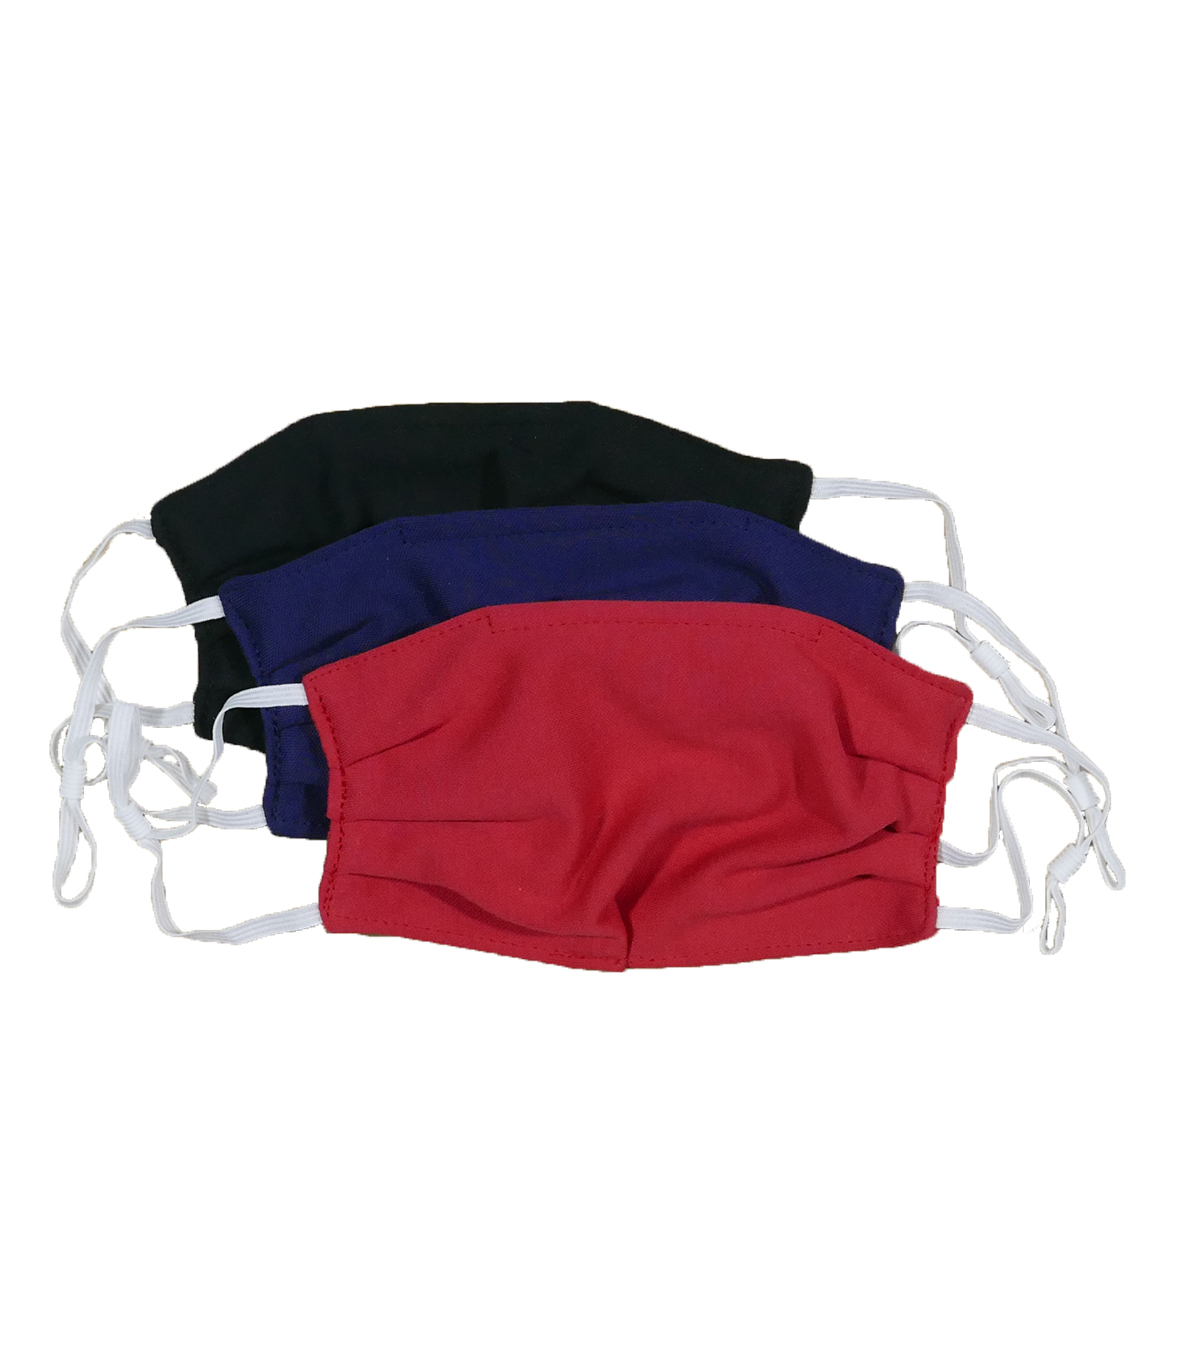 Cotton Pique Face Masks - 4 Pack Made in USA | RAMBLERS WAY